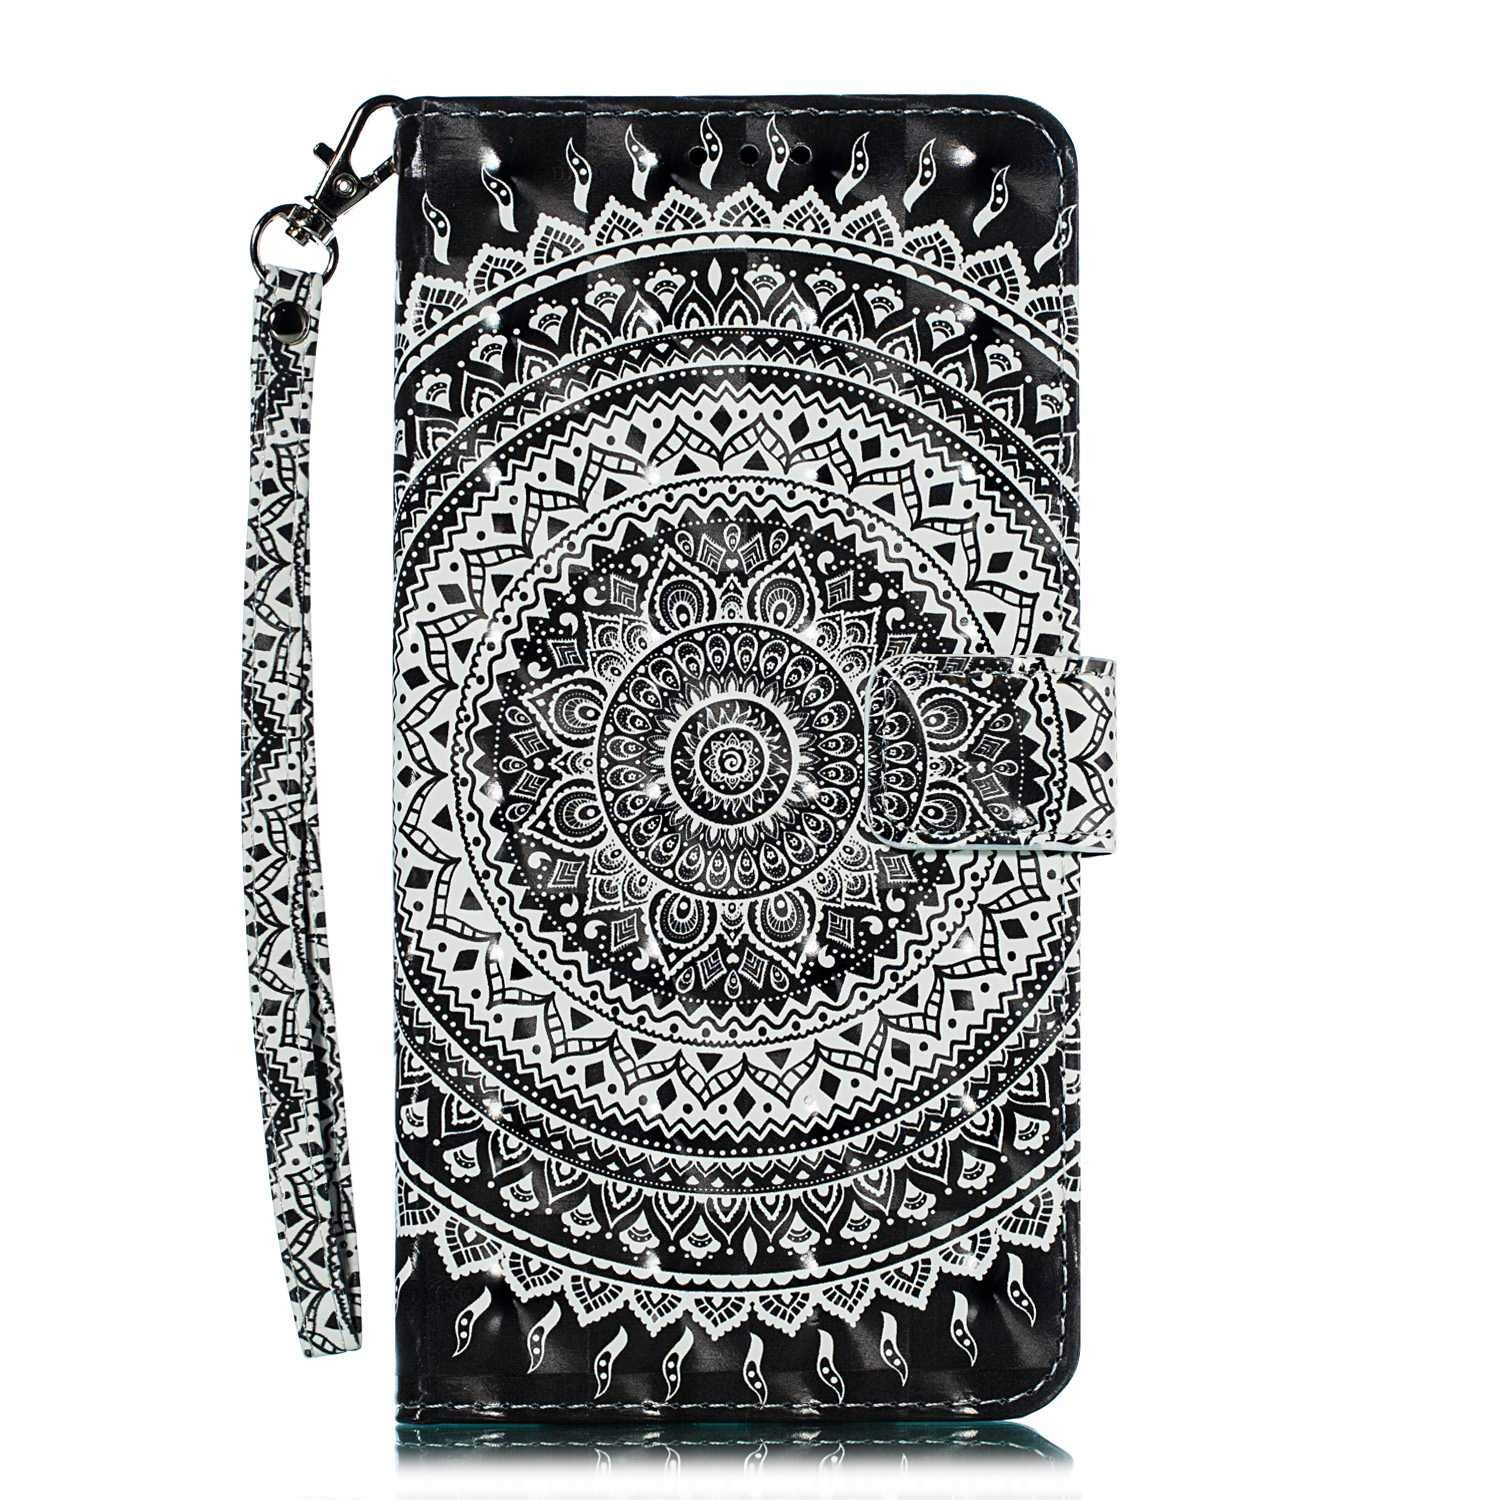 Slim Flip Book Protective Cover with Silicone Inner Case for Huawei P30 Magnetic Shockproof Case with Card Holder Pattern 7 DENDICO Huawei P30 Case